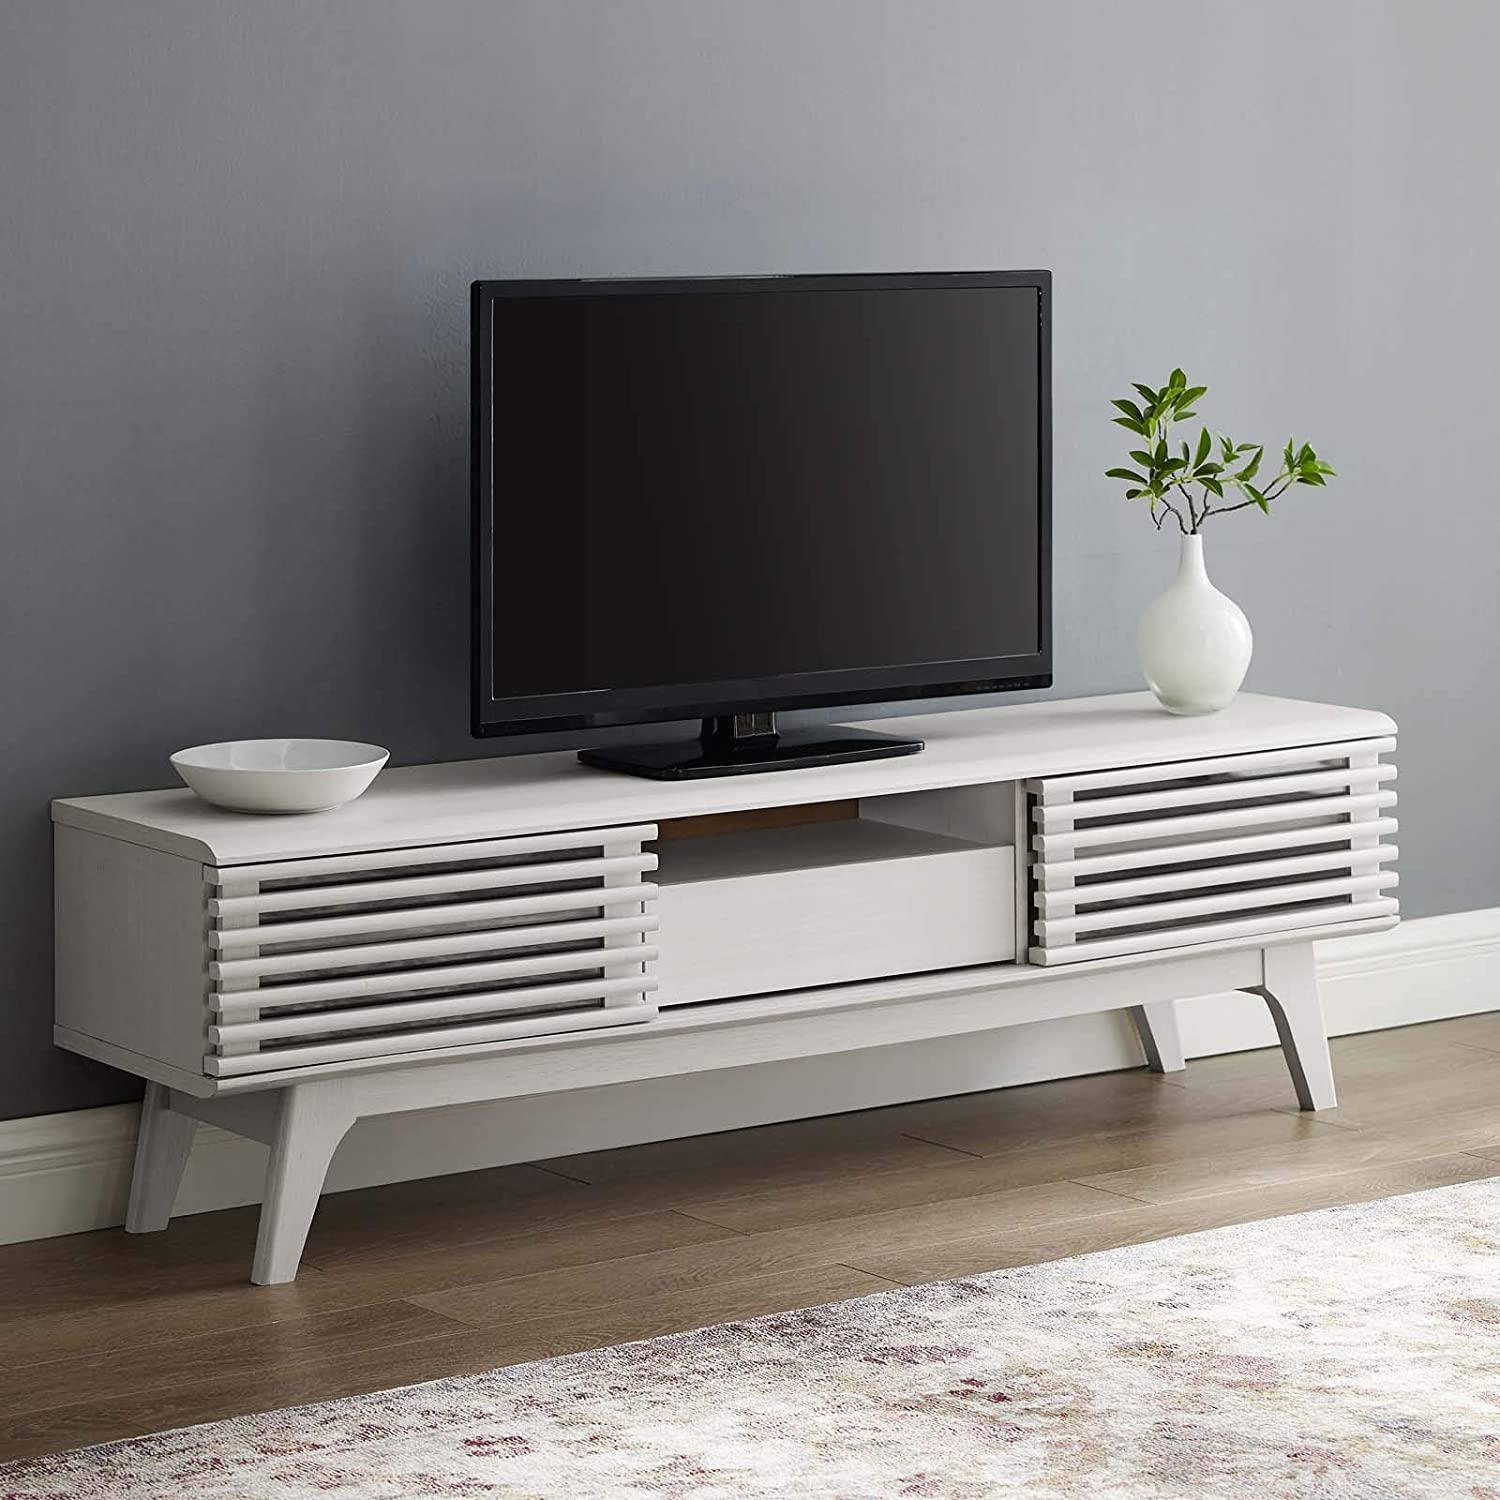 Modway Render Mid-Century Modern Low Profile 59 Inch TV Stand in White